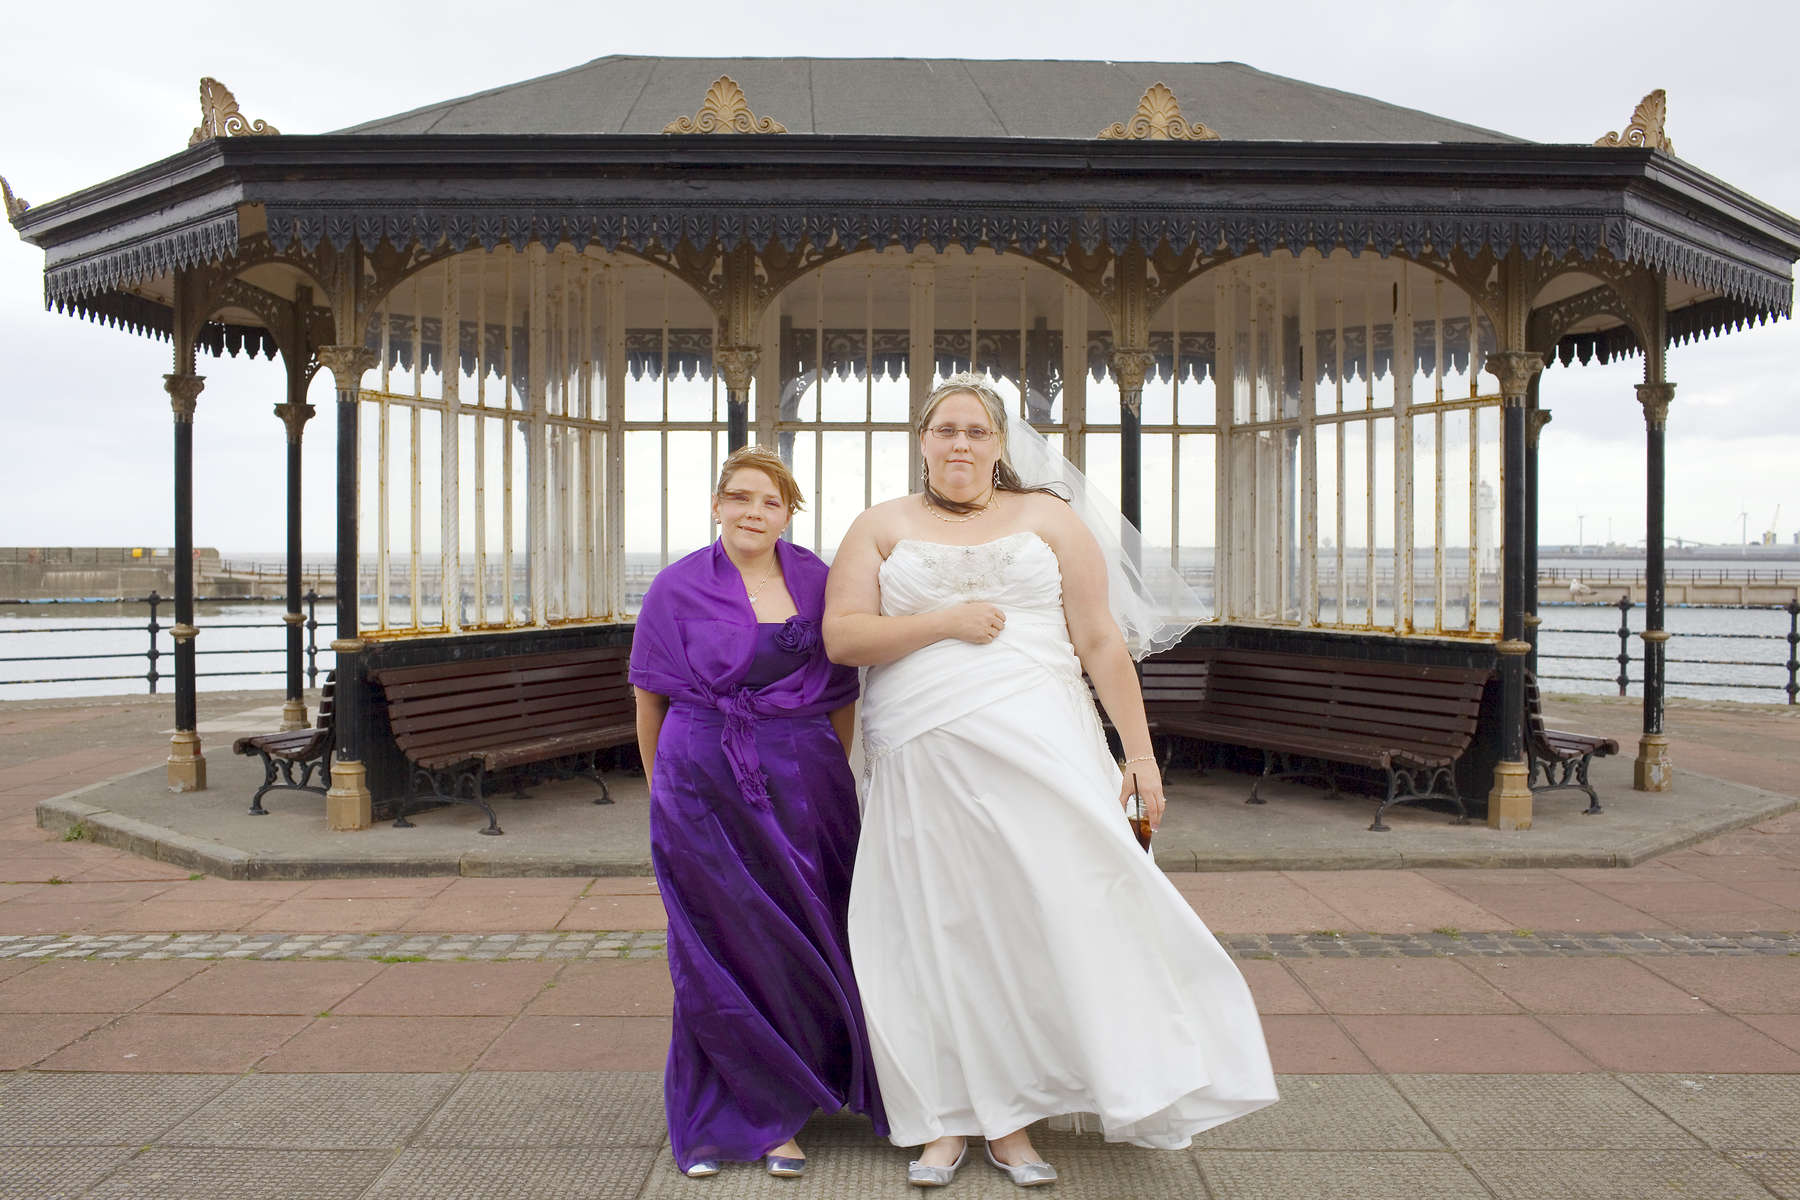 Newly wed Claire Simon-Kind (30) with sister and bridesmaid Sarah Simon (28) in front of a weather shelter on New Brighton promenade.In 1986, world famous photographer Martin Parr published his book 'The Last Resort,' a set of photographs taken over three seasons 1983-85 in the Liverpool suburb of New Brighton. 25 years later, photographer and Parr fan, Peter Dench, went on a Bank Holiday pilgrimage to New Brigthon to walk in Parr's footsteps and document what has changed or remained the same in the seaside town.